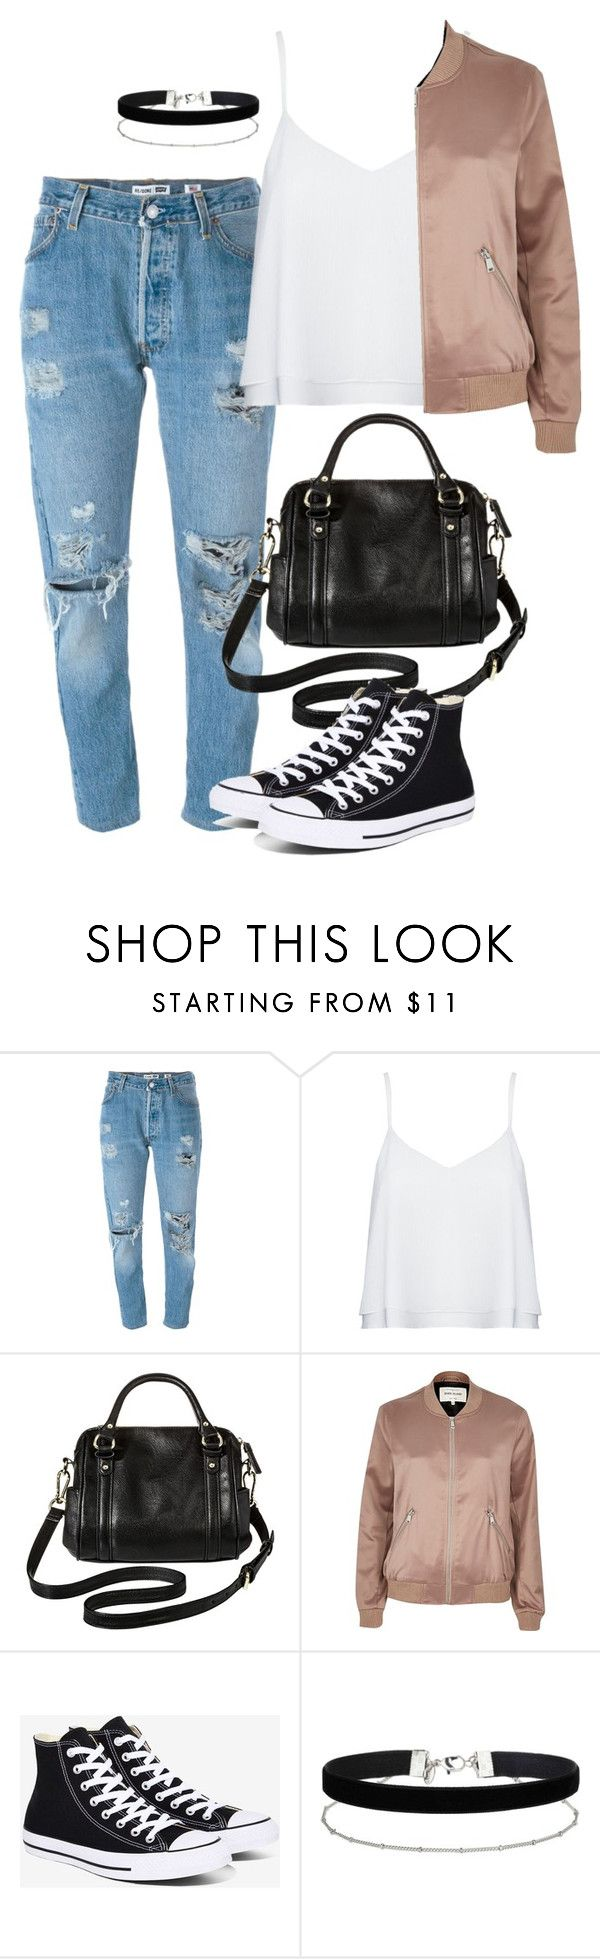 """Sin título #315"" by franciscagomezm on Polyvore featuring moda, Levi's, Alice + Olivia, Merona, River Island, Converse y Miss Selfridge"